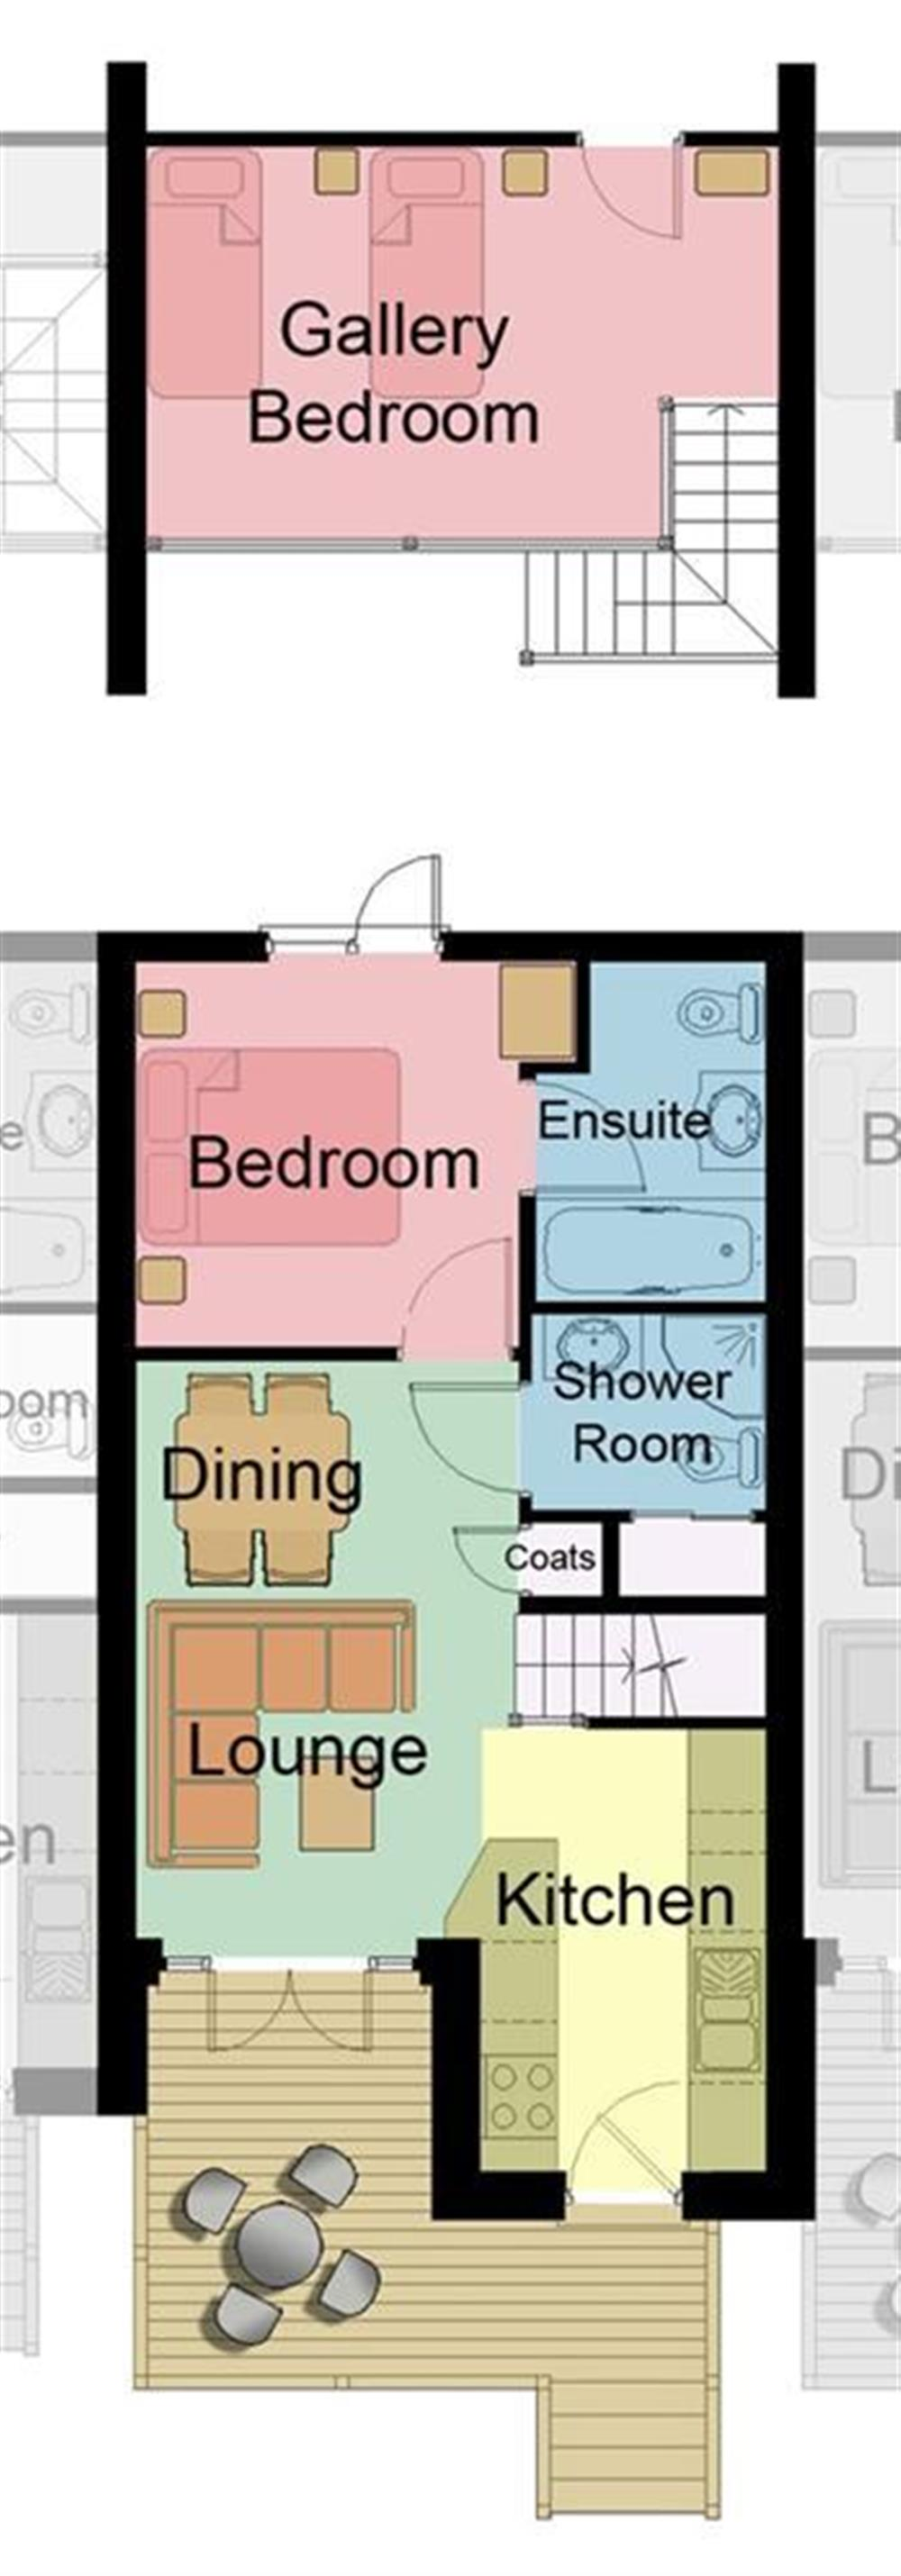 Floor Plans at Keepers Cottage 5 in Hillfield, Dartmouth